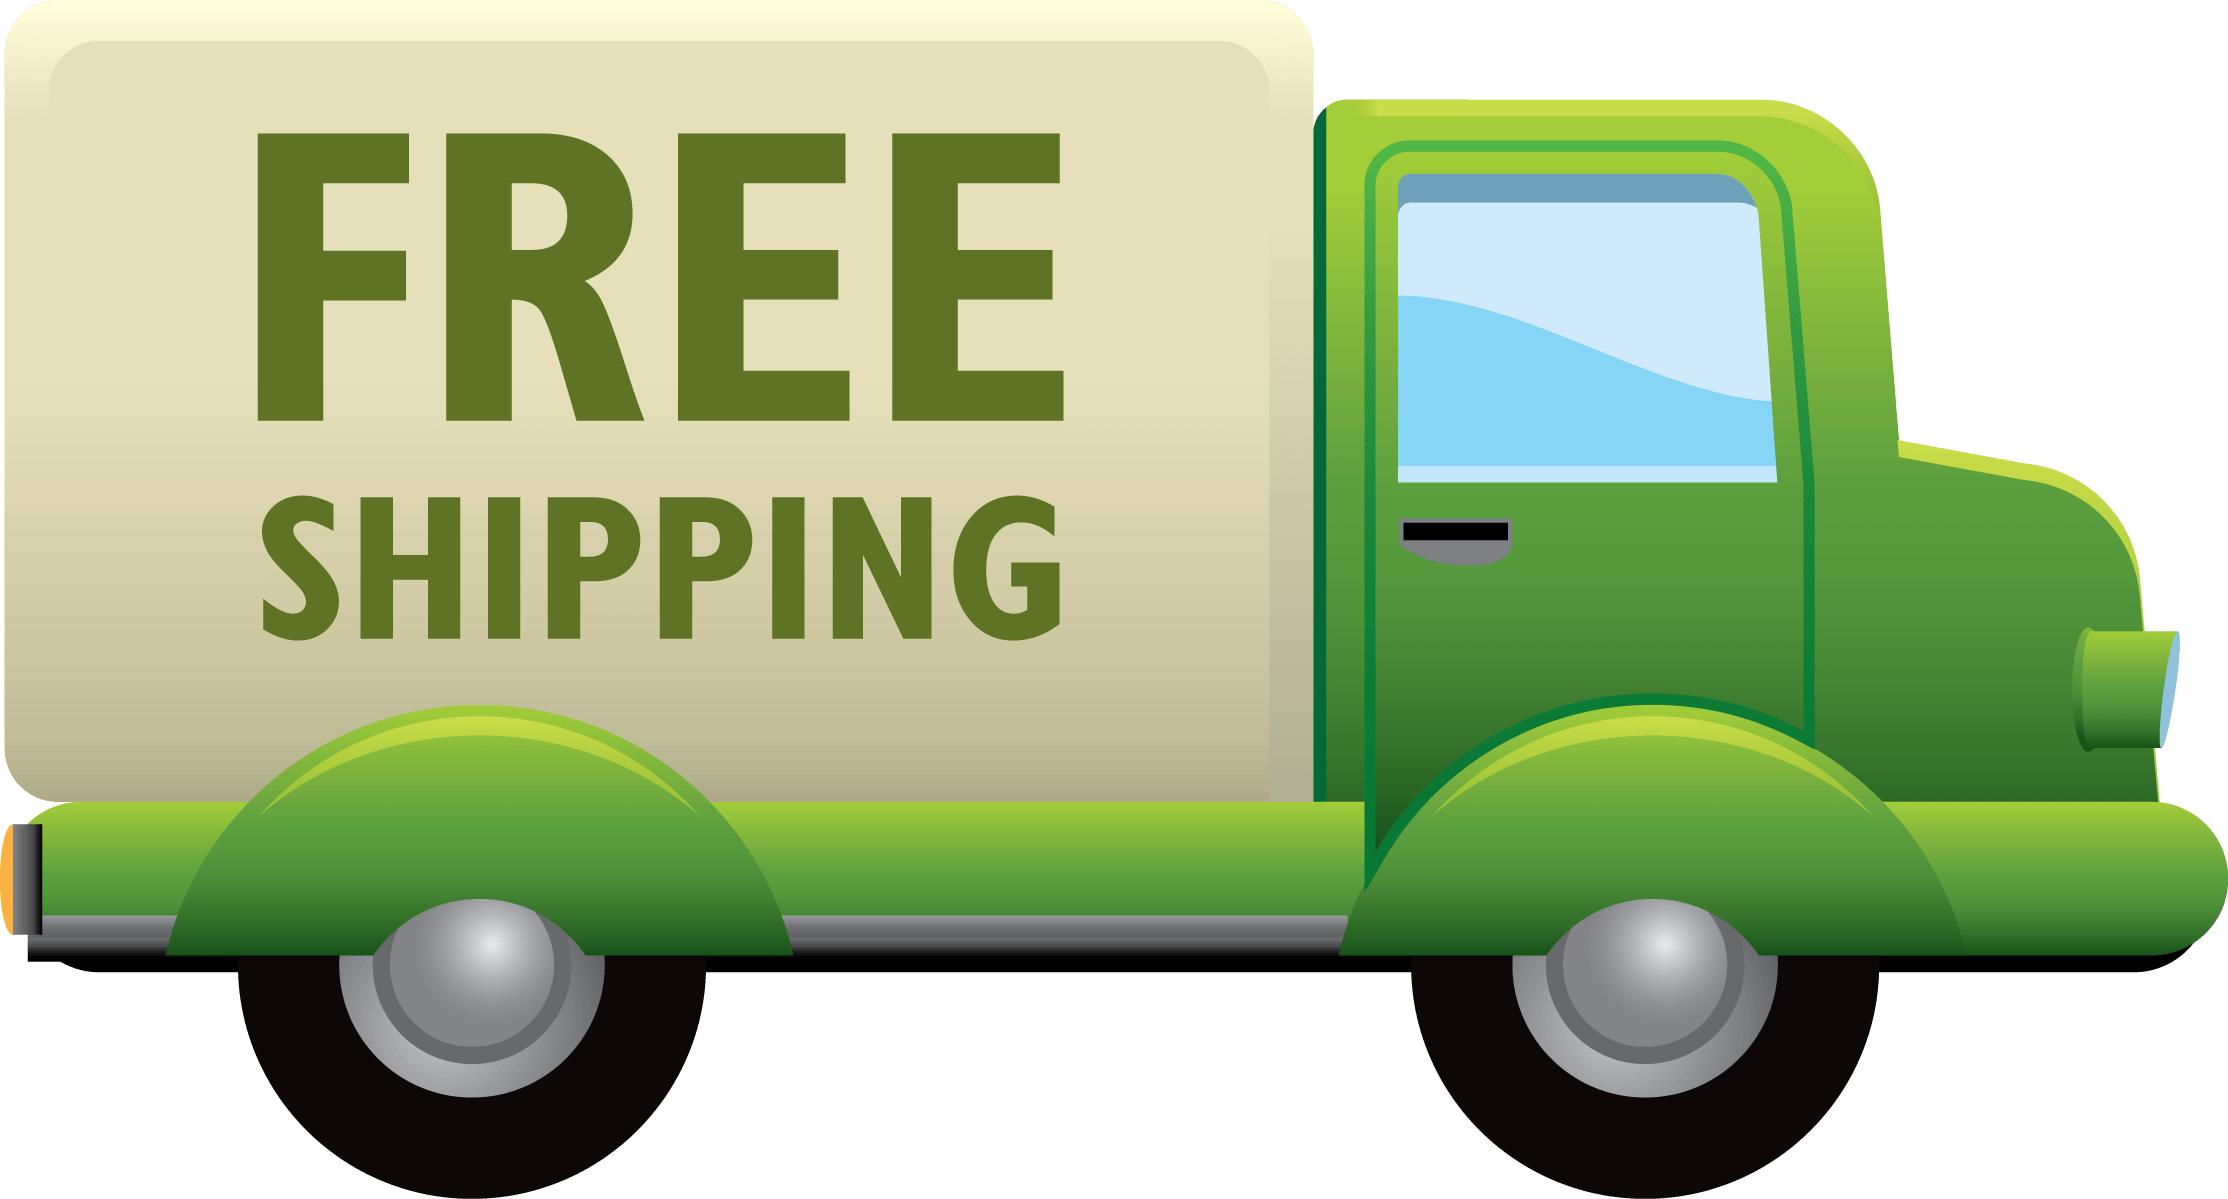 Free Shipping Car Png image #46925